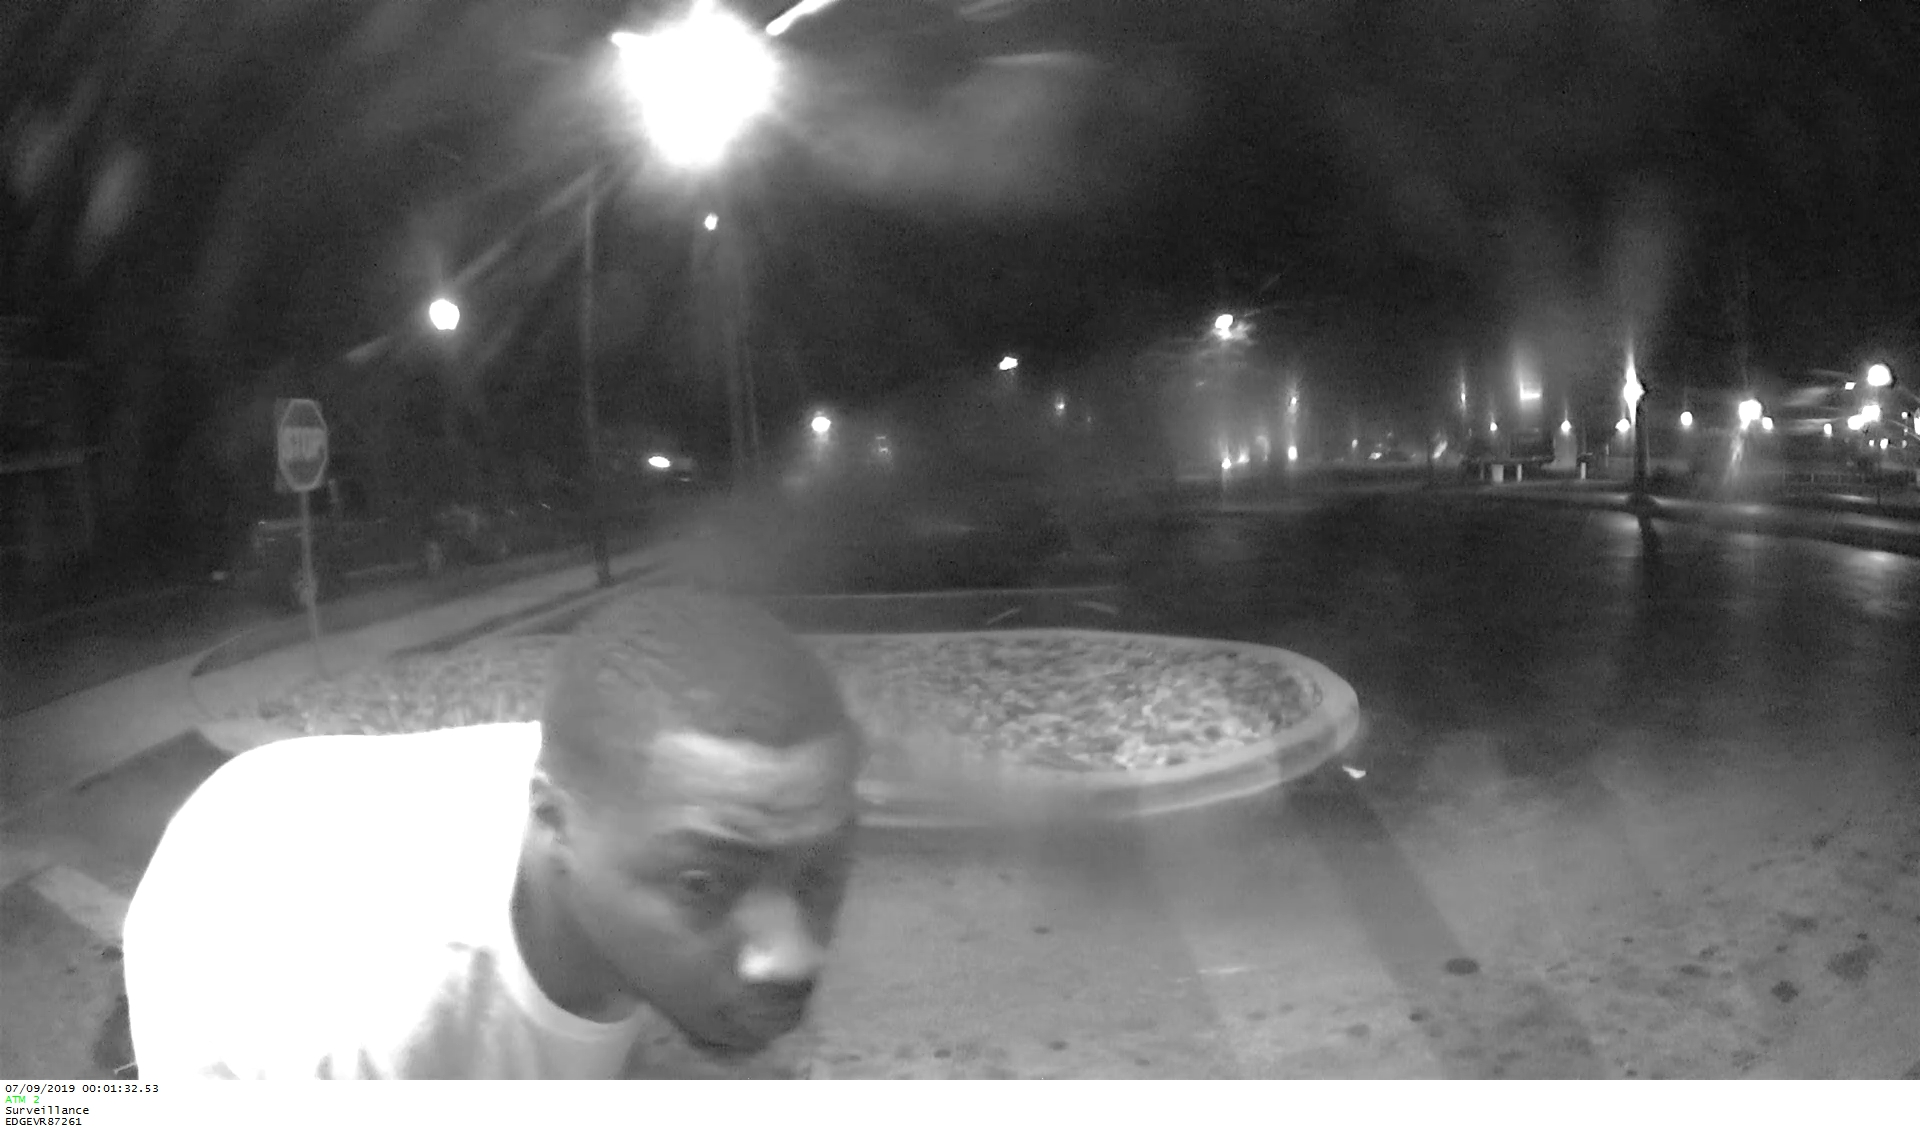 Police looking for suspect in ATM robbery | WANE